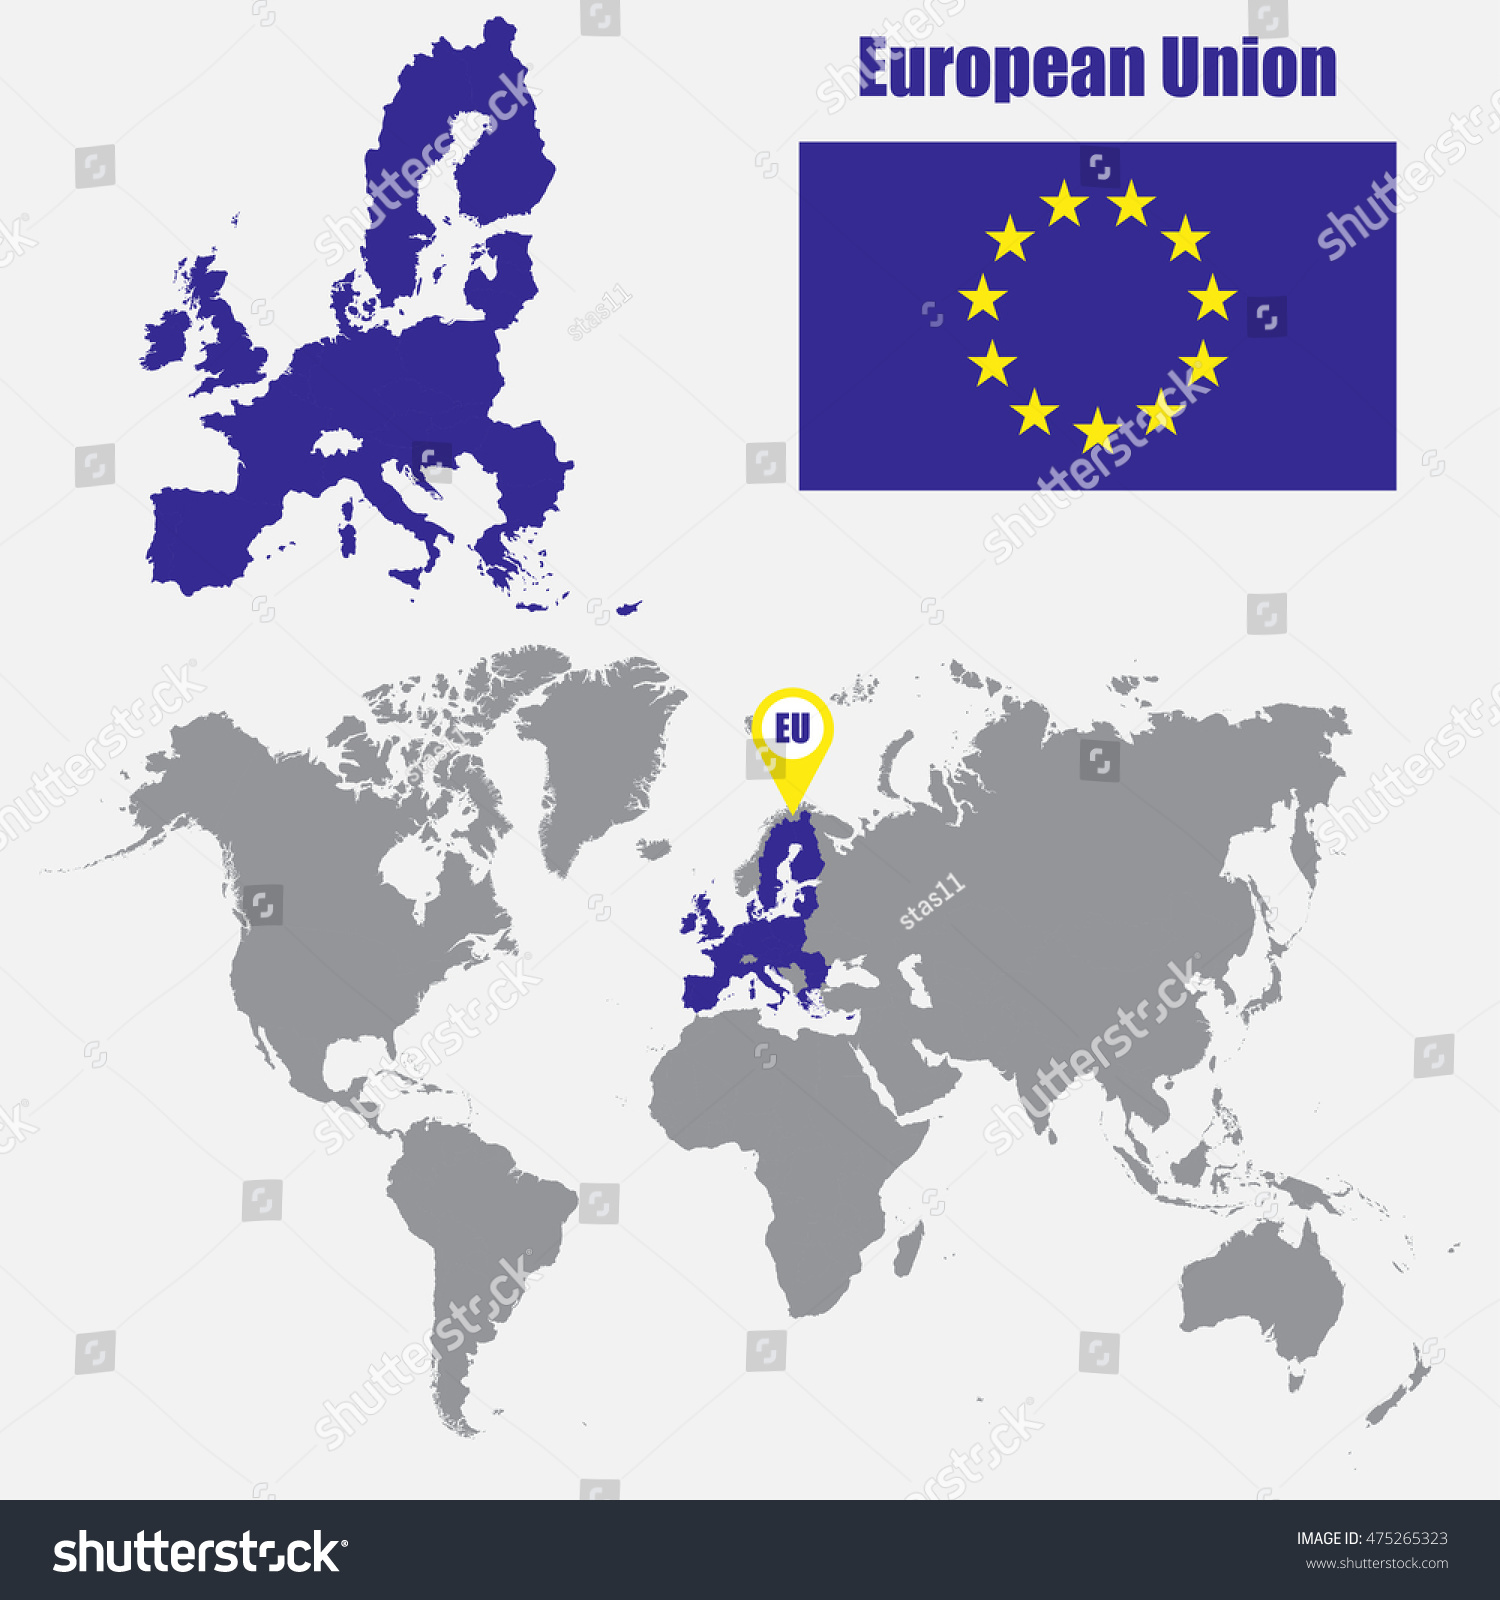 world geography european union and